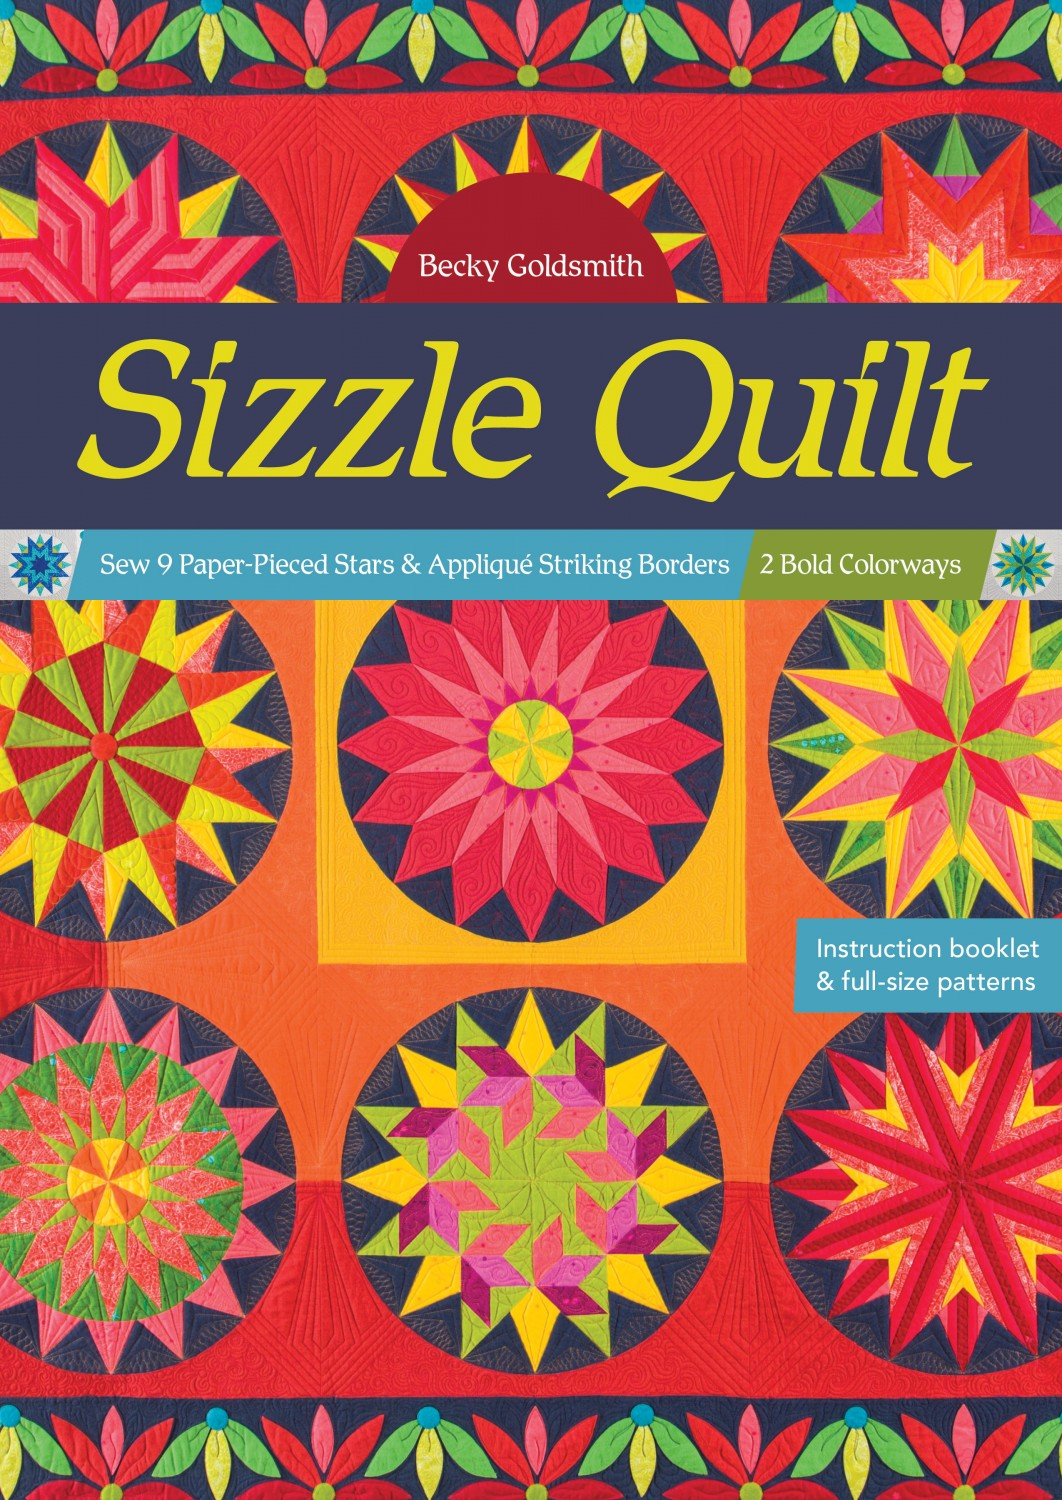 Sizzle Quilt ~RELEASE DATE: Oct. 25, 2020~